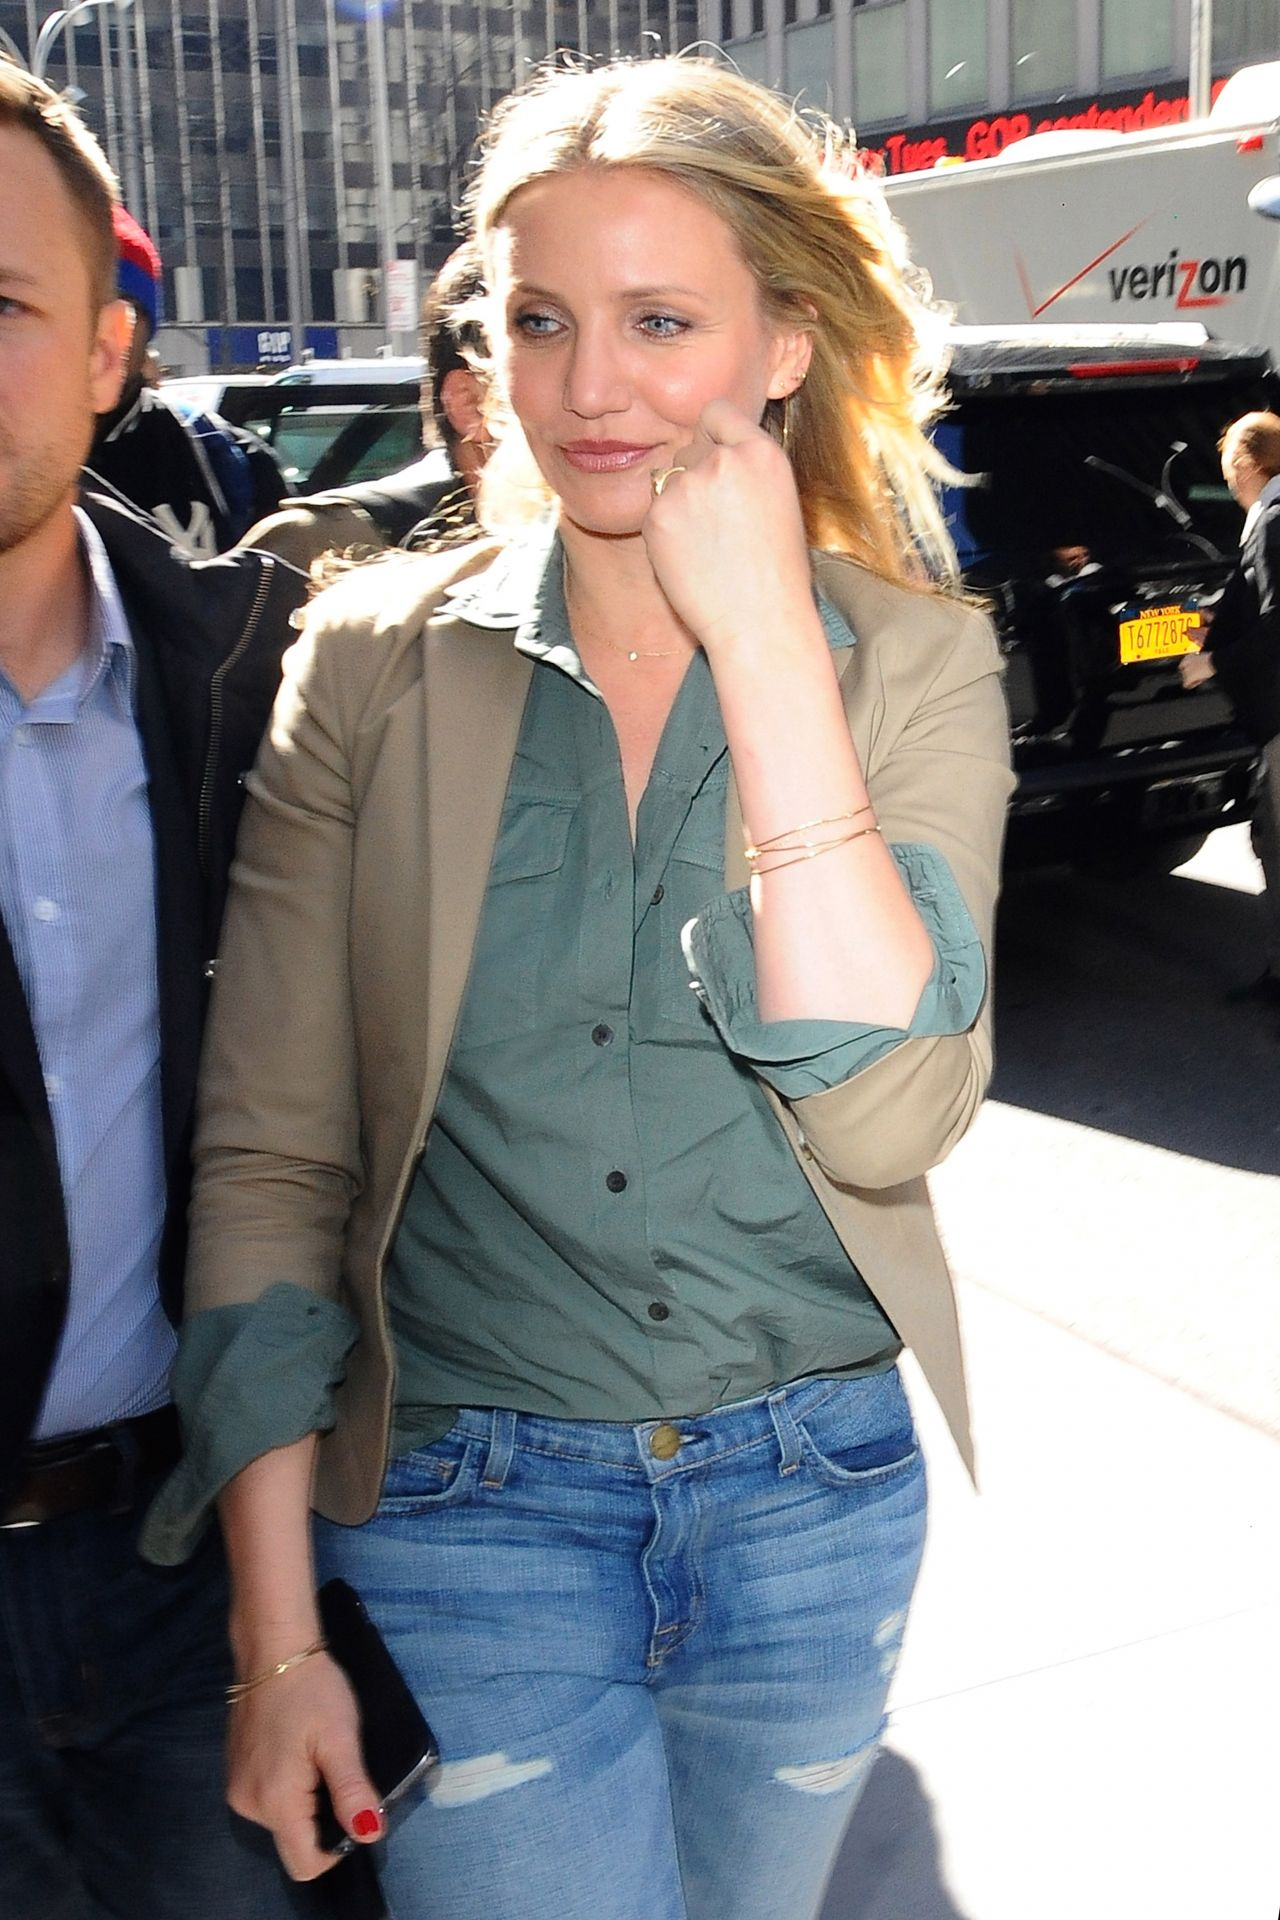 Cameron Diaz Looking Stylish - Arriving at Z100 in New ...Cameron Diaz Pregnant 2020